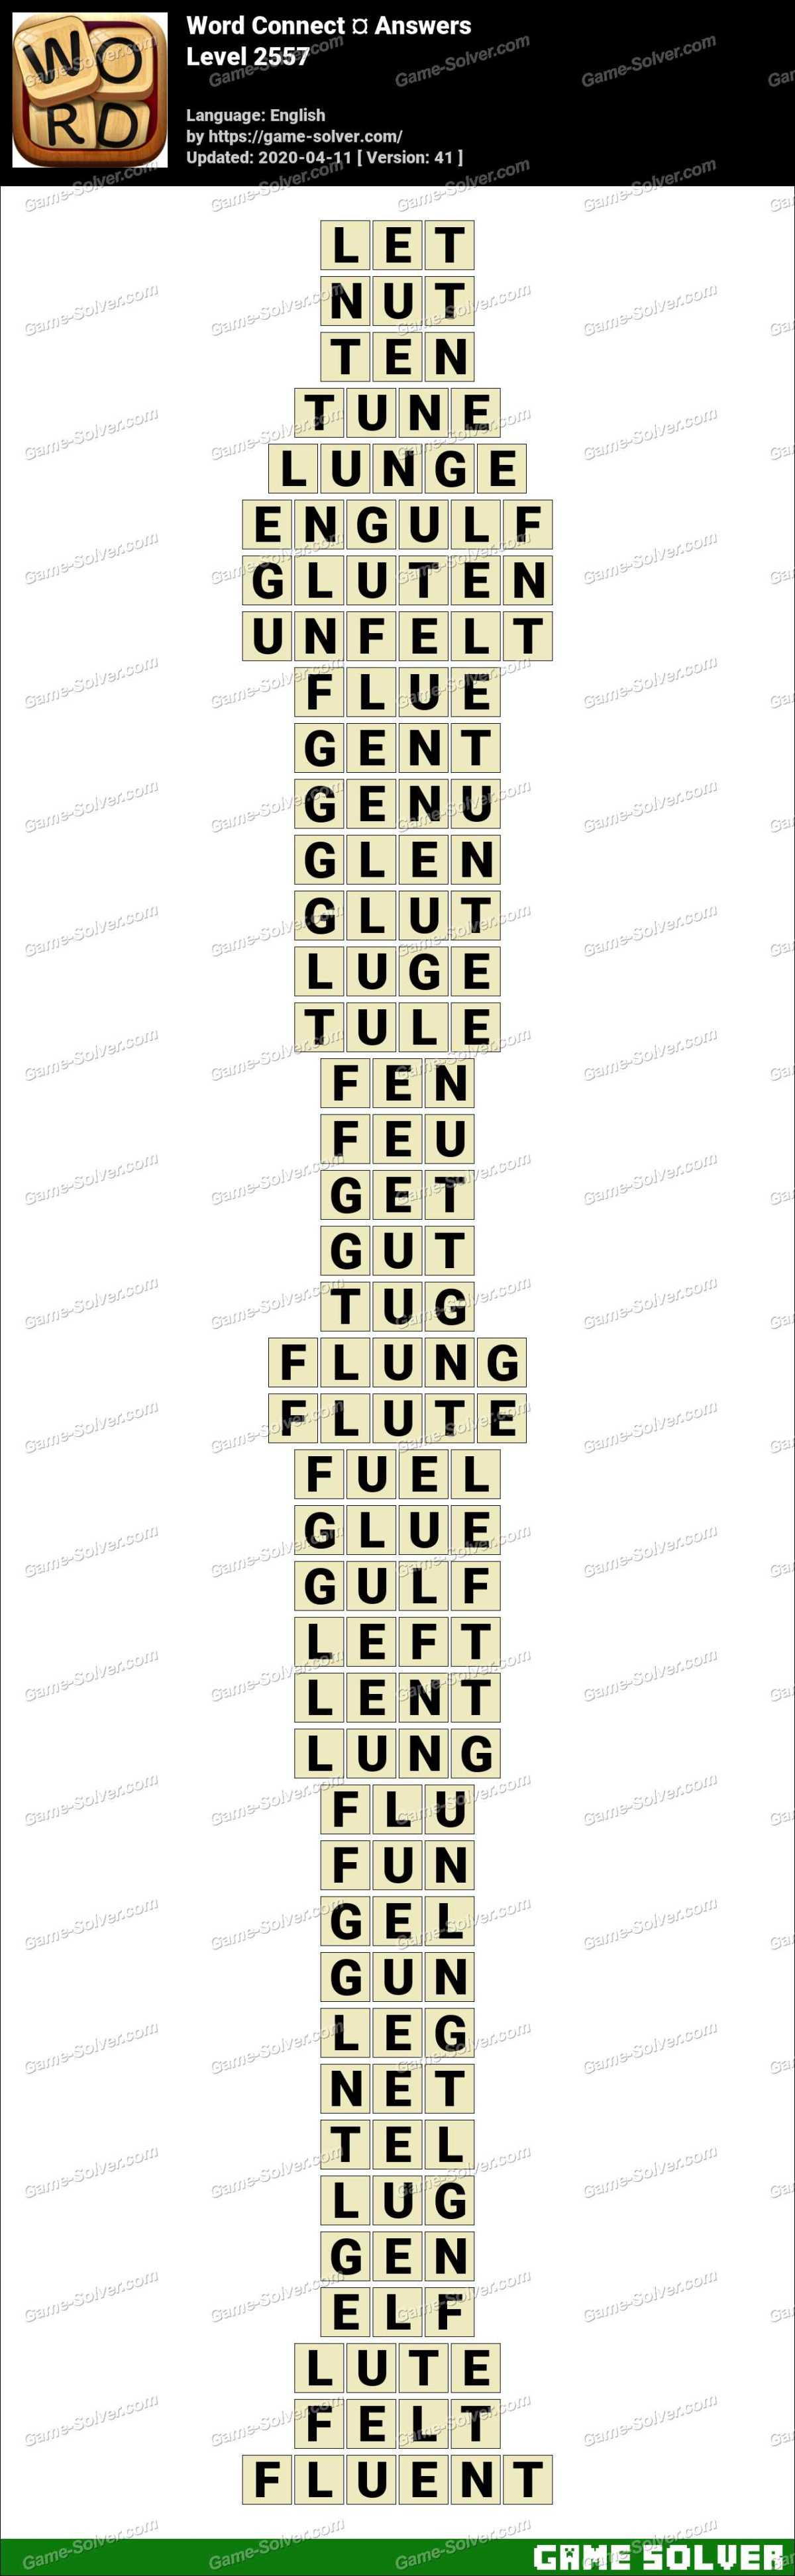 Word Connect Level 2557 Answers